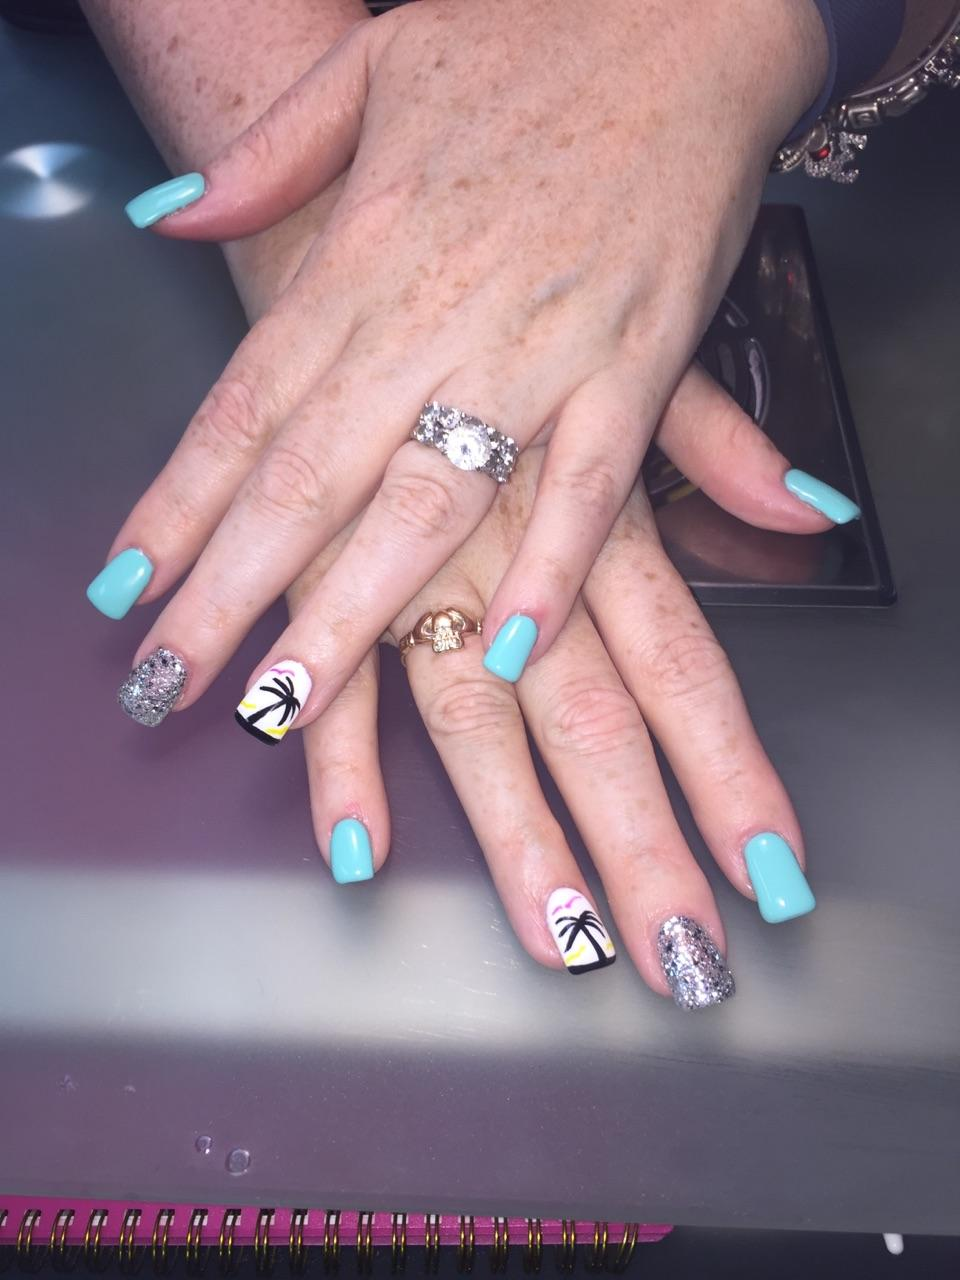 BLISS NAILS AND SALON, Belford NJ